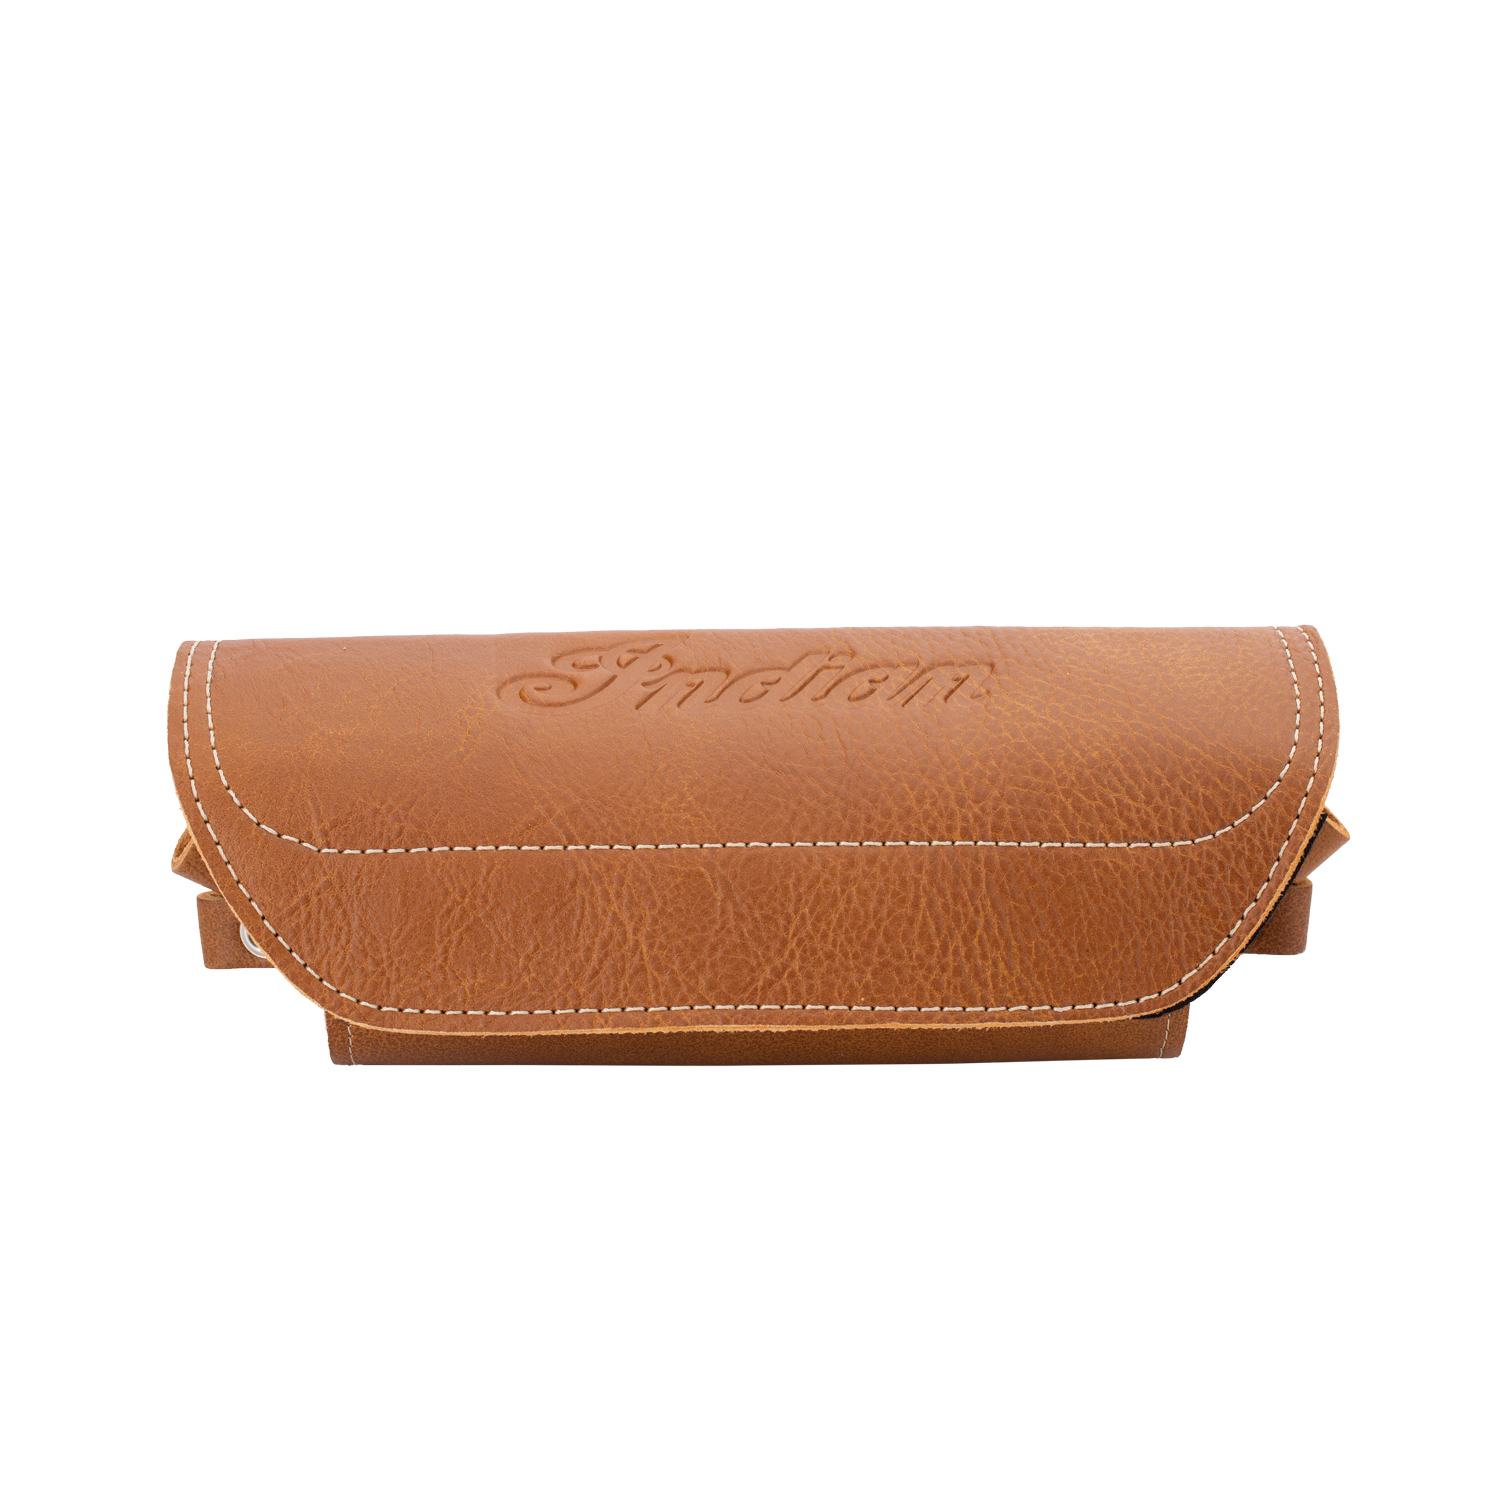 Genuine Leather Windshield Bag - Desert Tan